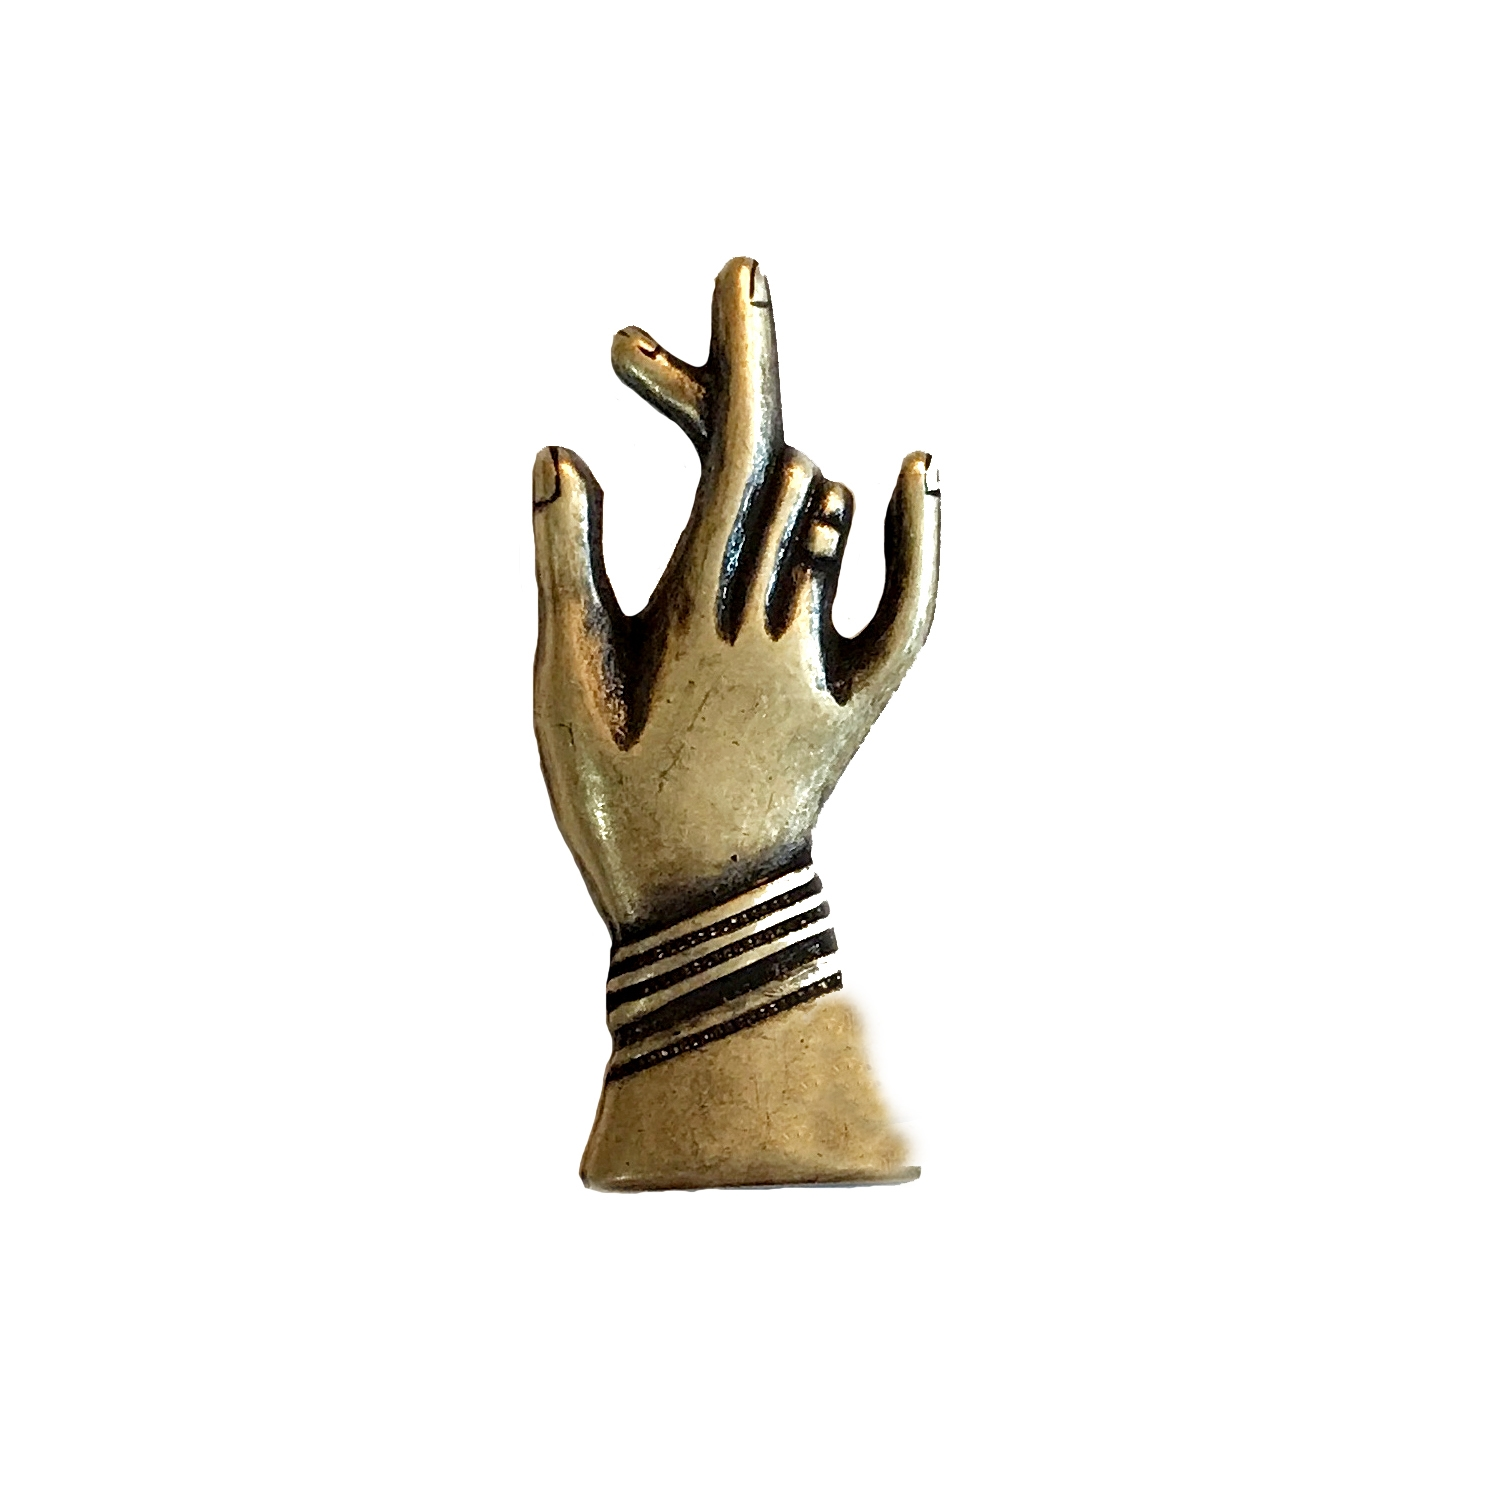 brass hand, left facing hand, brass ox, 04490, antique brass, hand stampings, steampunk art, vintage jewelry supplies, jewelry making supplies, antique black, hand with cuff